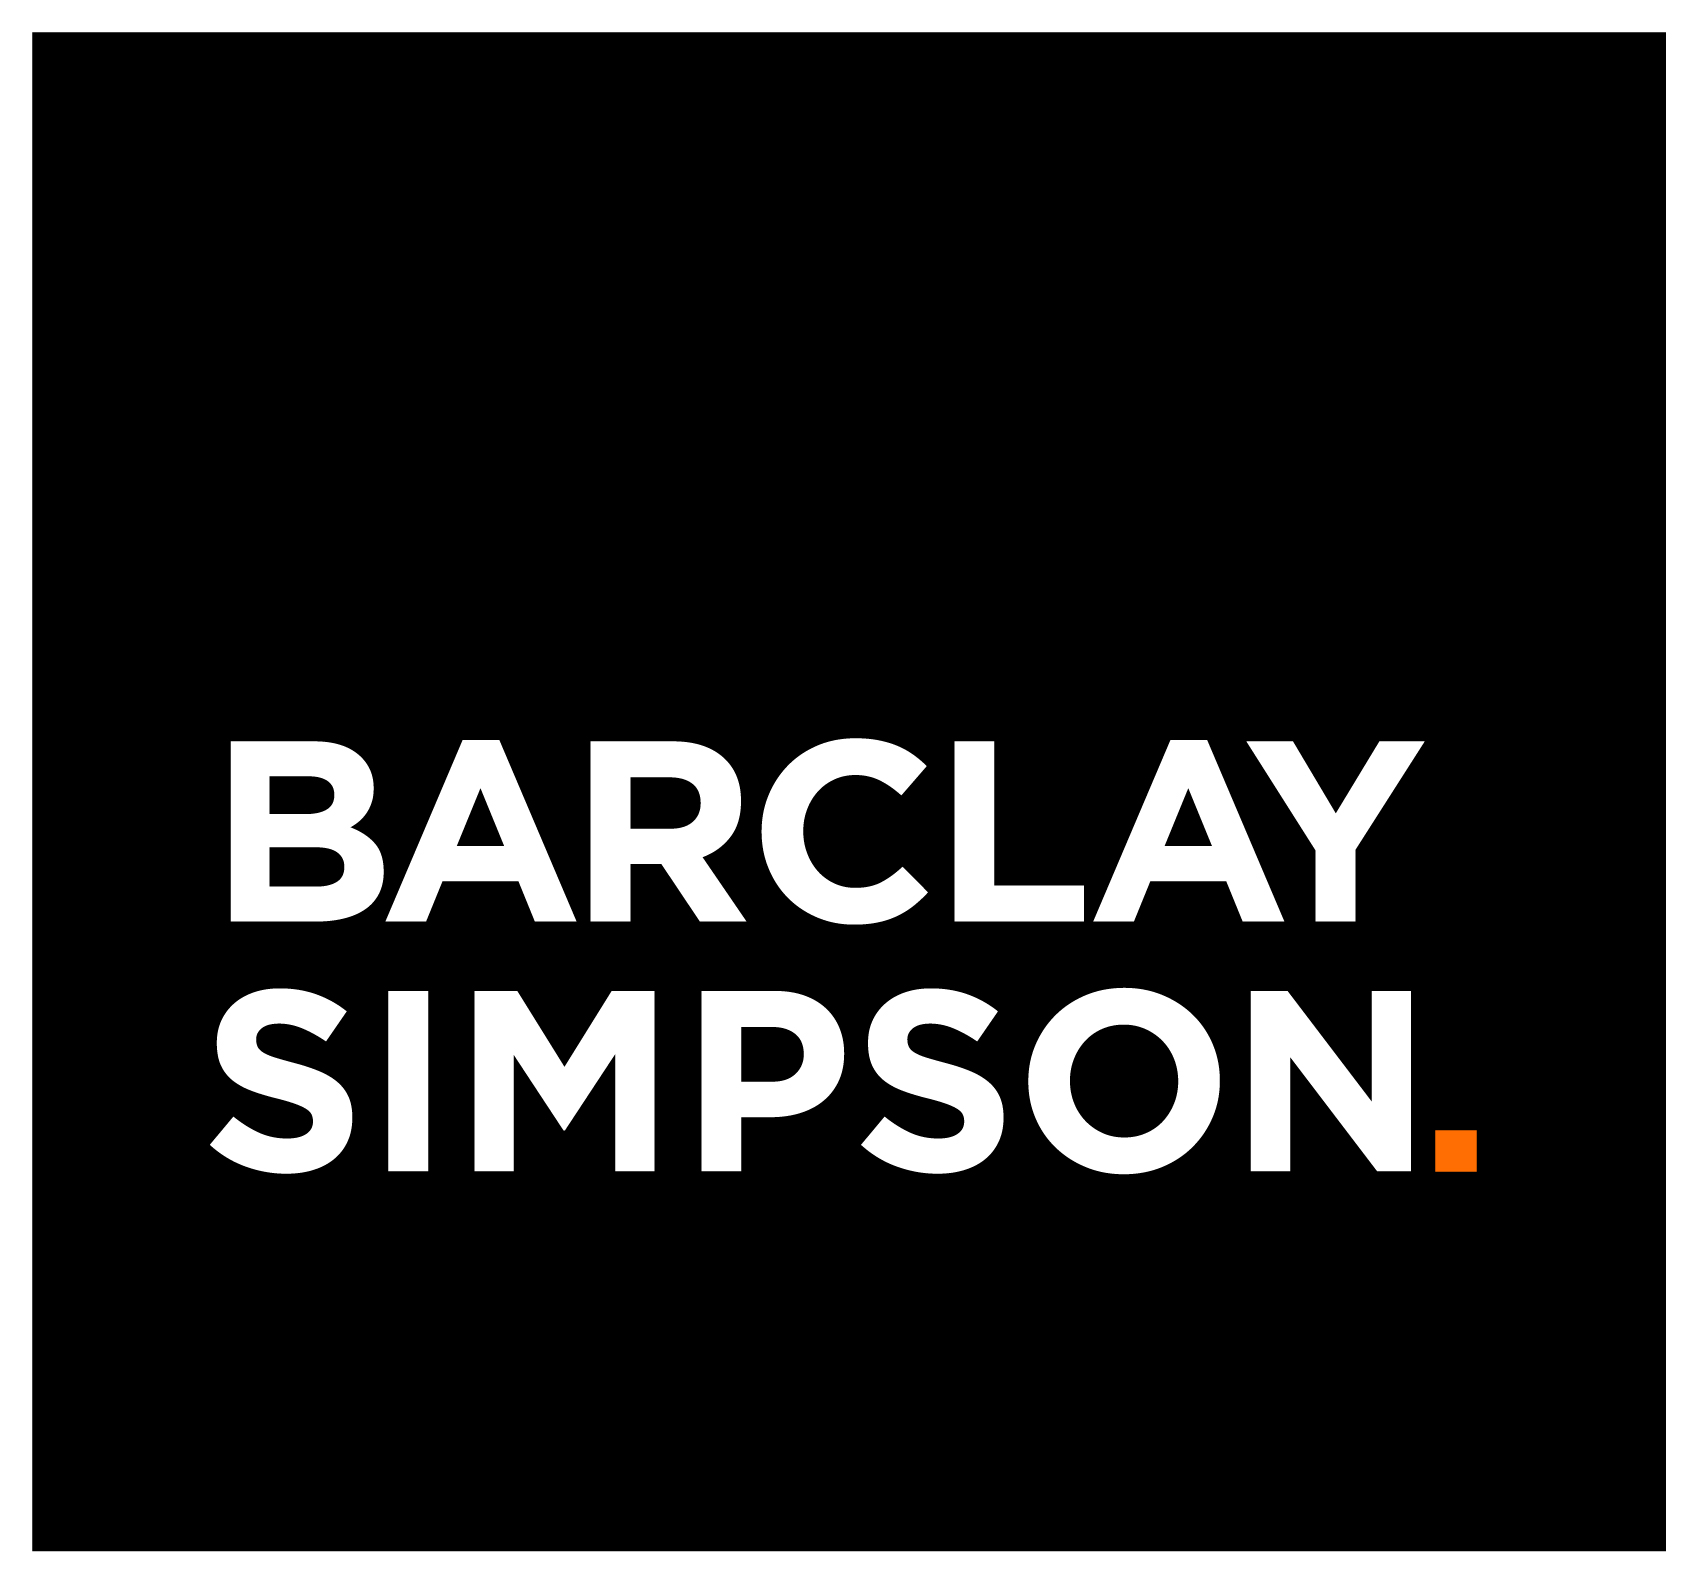 Barclay Simpson